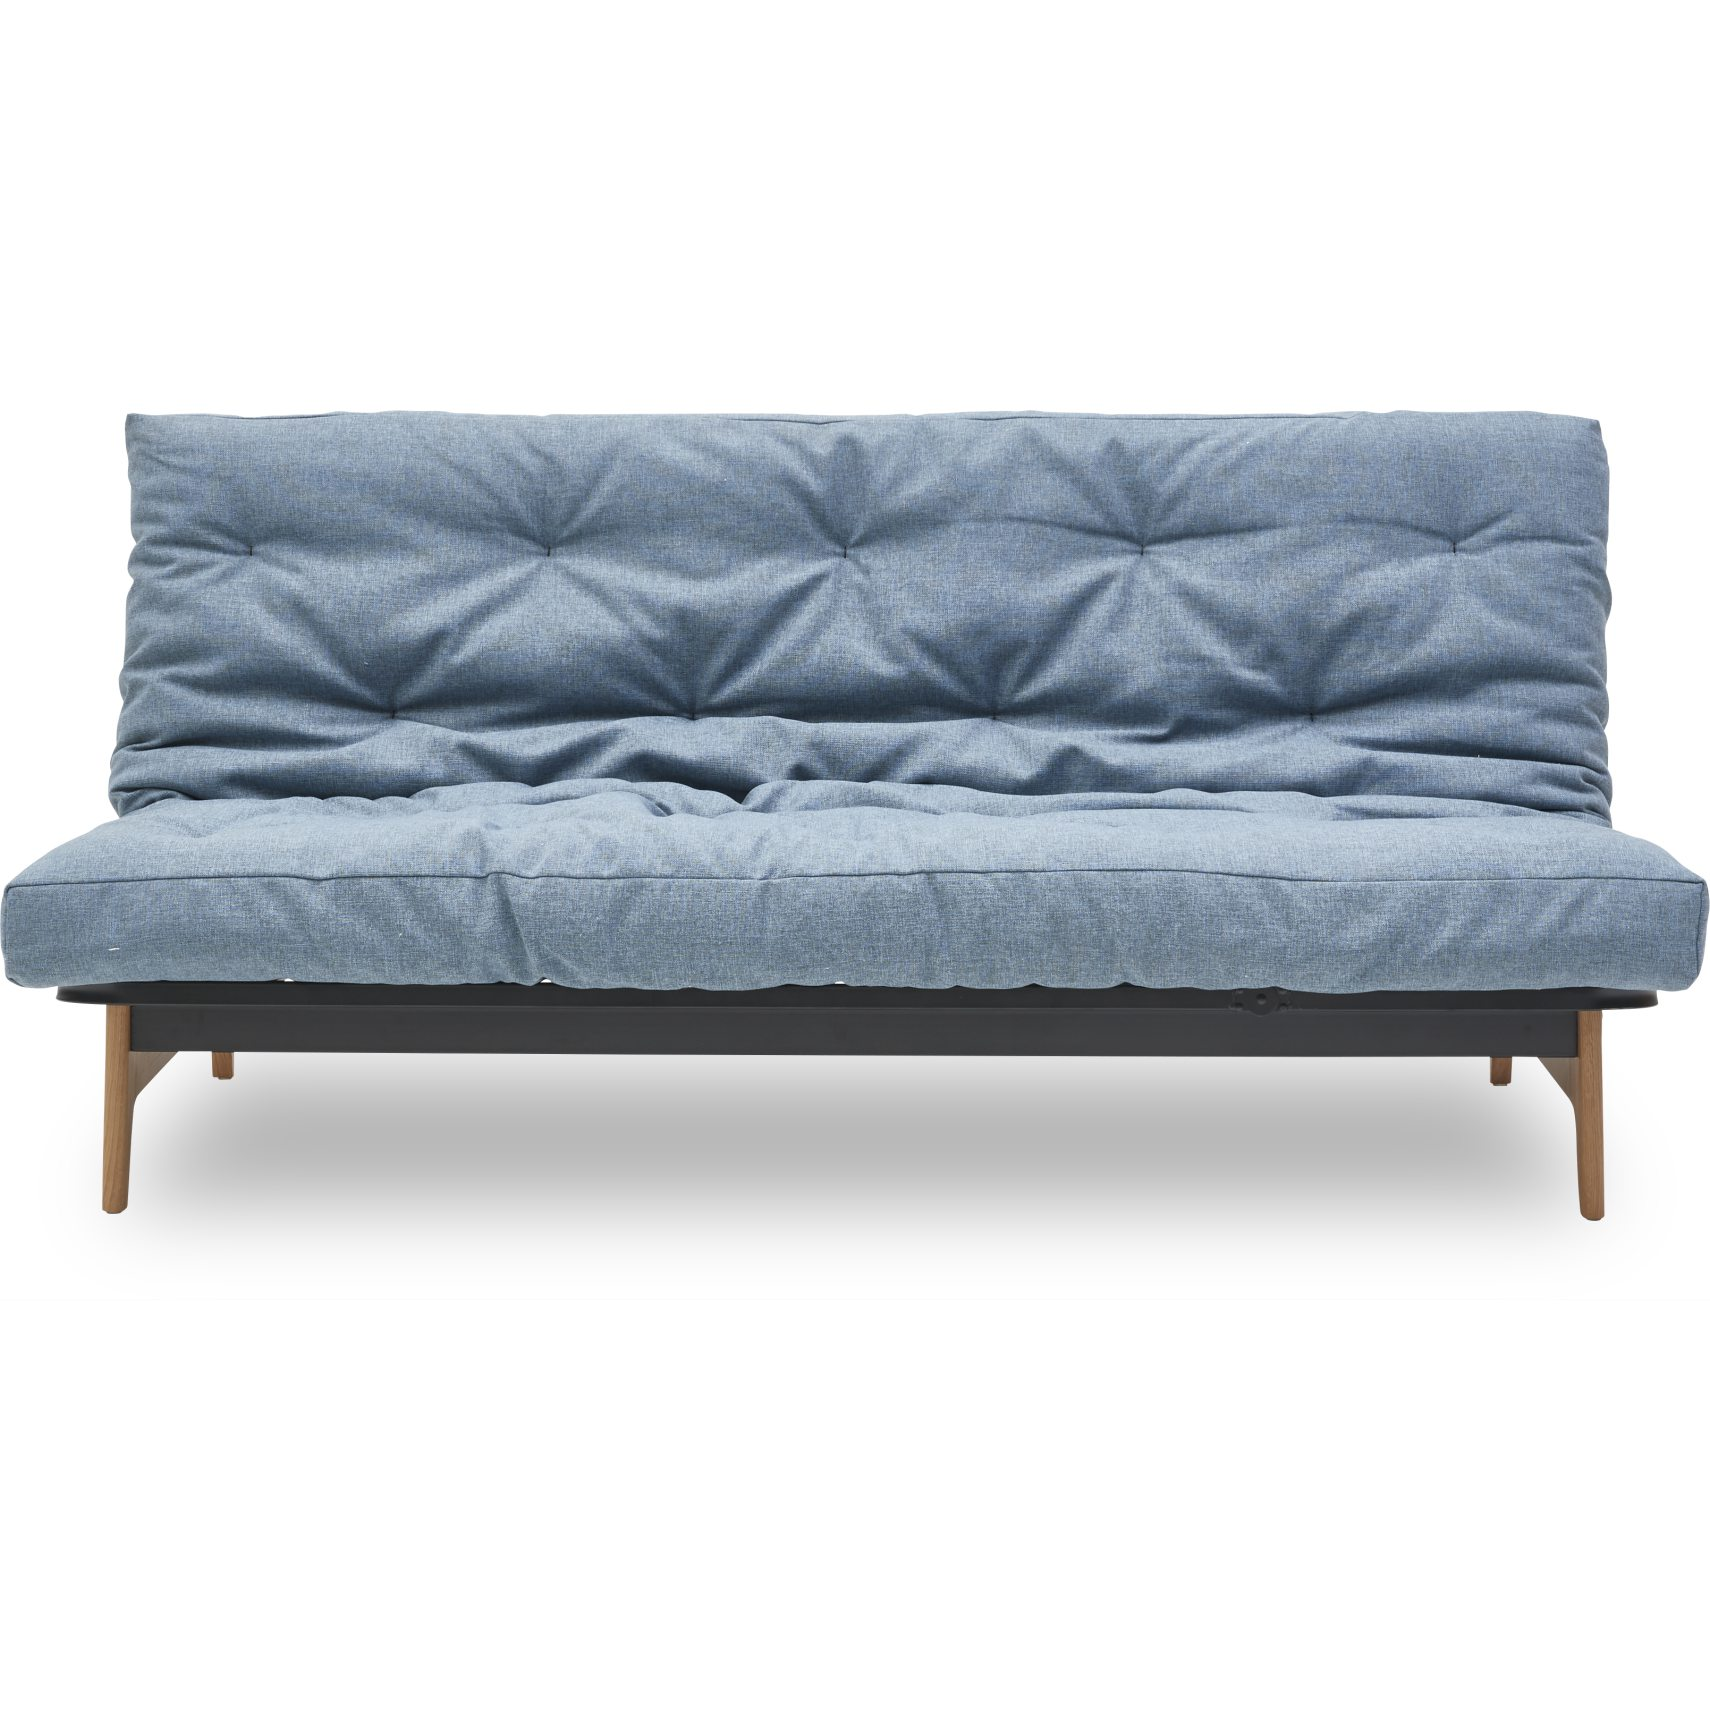 Innovation Living - Aslak Spring Round Sovesofa - Sovesofa